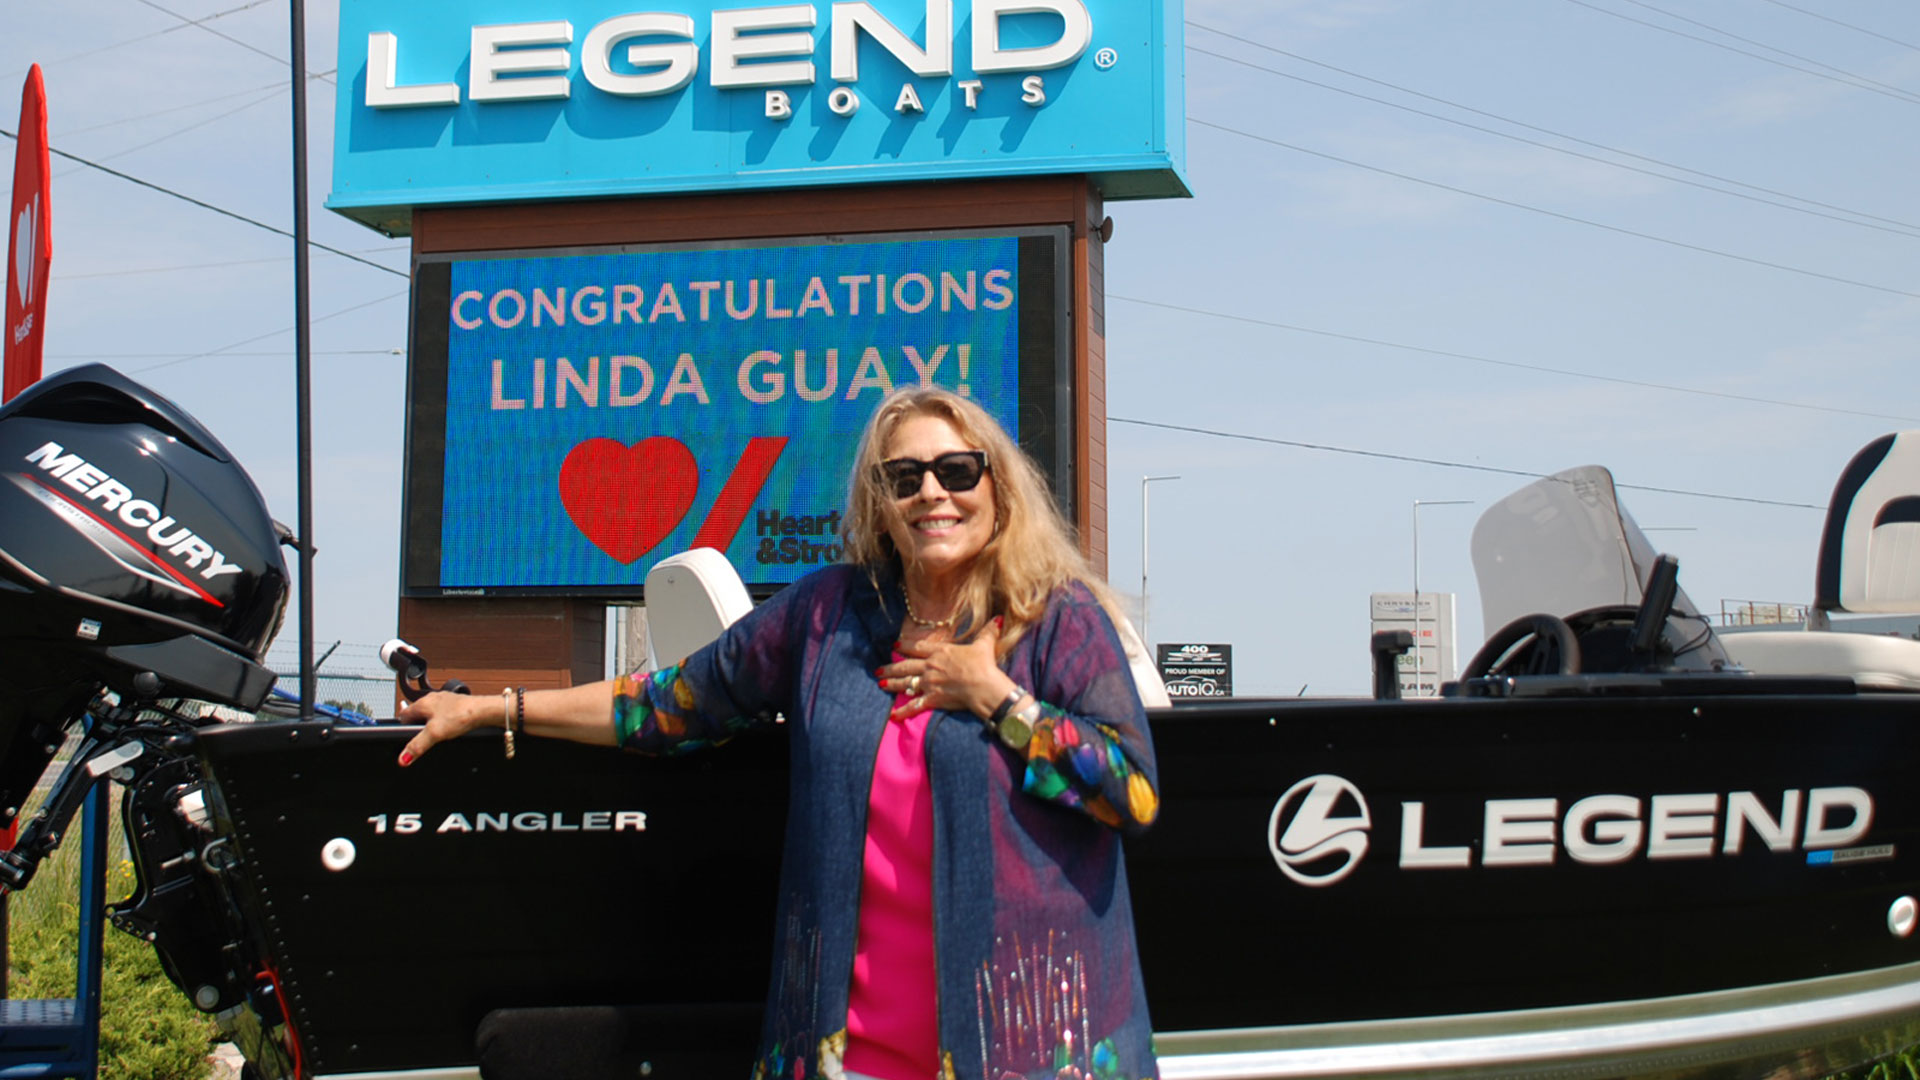 Woman standing in front of fishing boat and large Legend Boat business sign